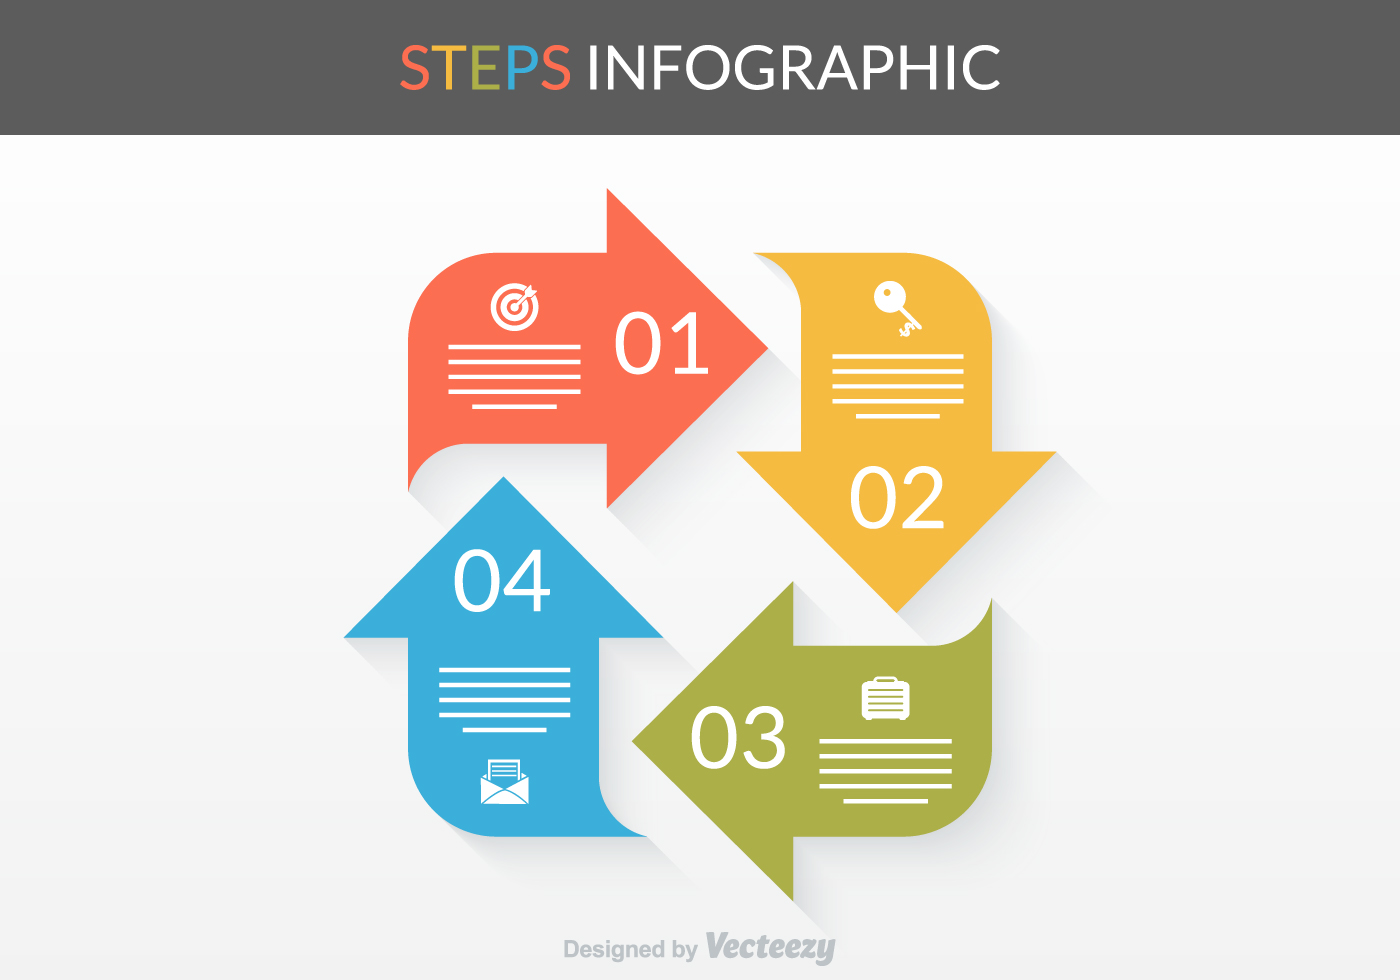 free vector steps infographic - download free vector art, stock